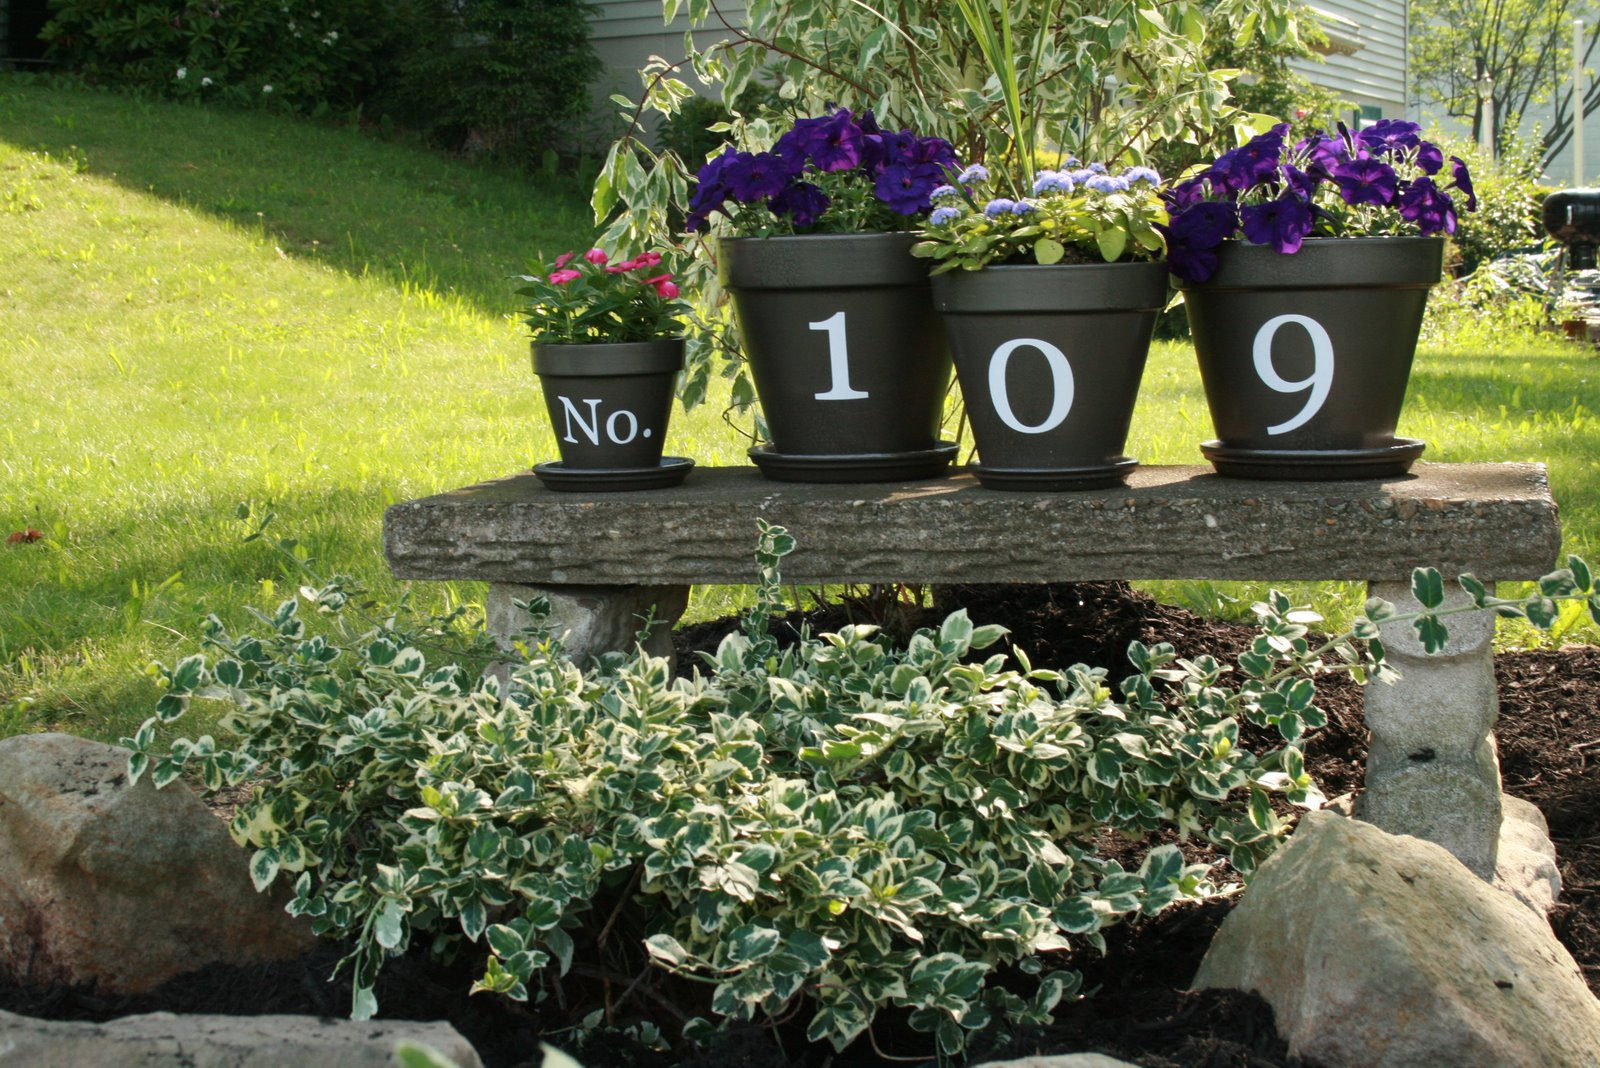 Paint each number on a different flower pot